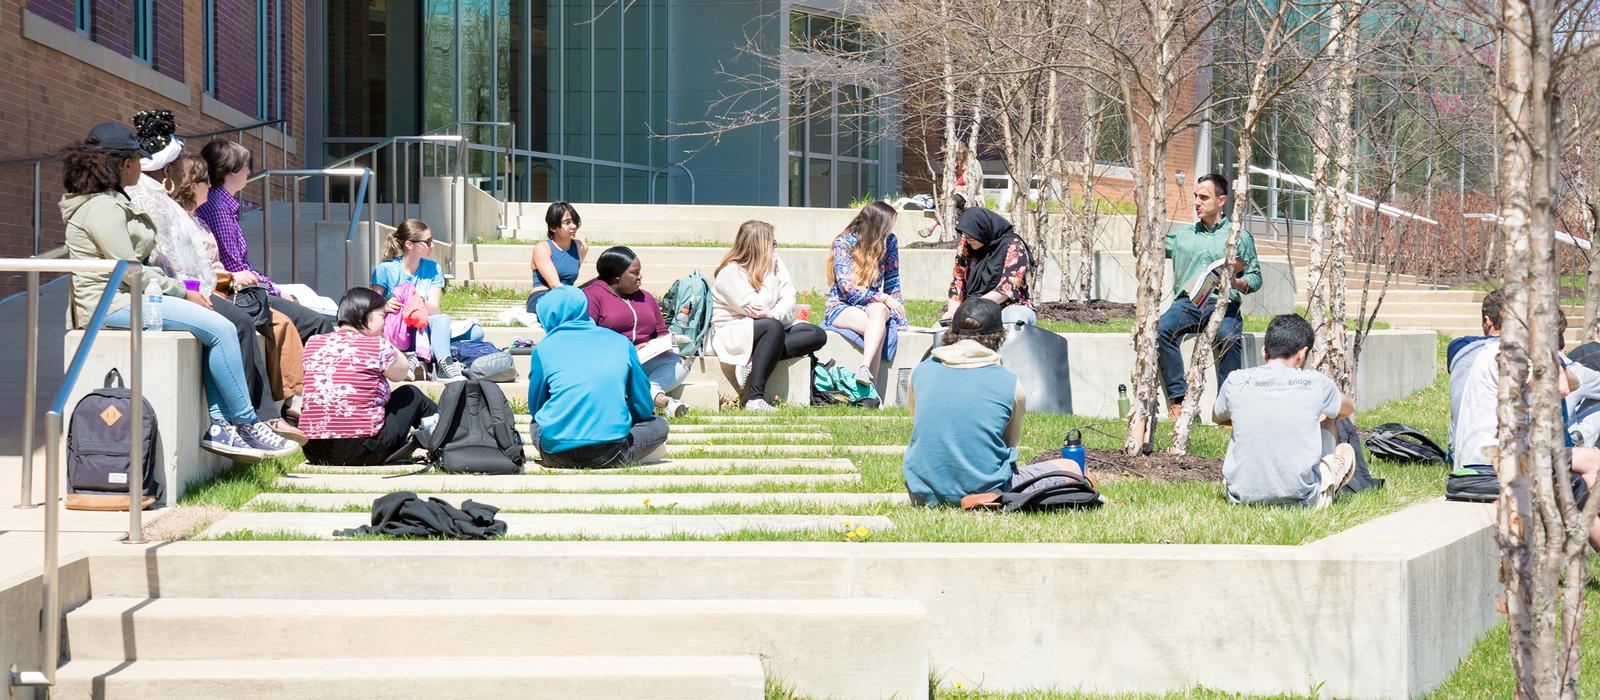 An outdoor class to discover at HCC.